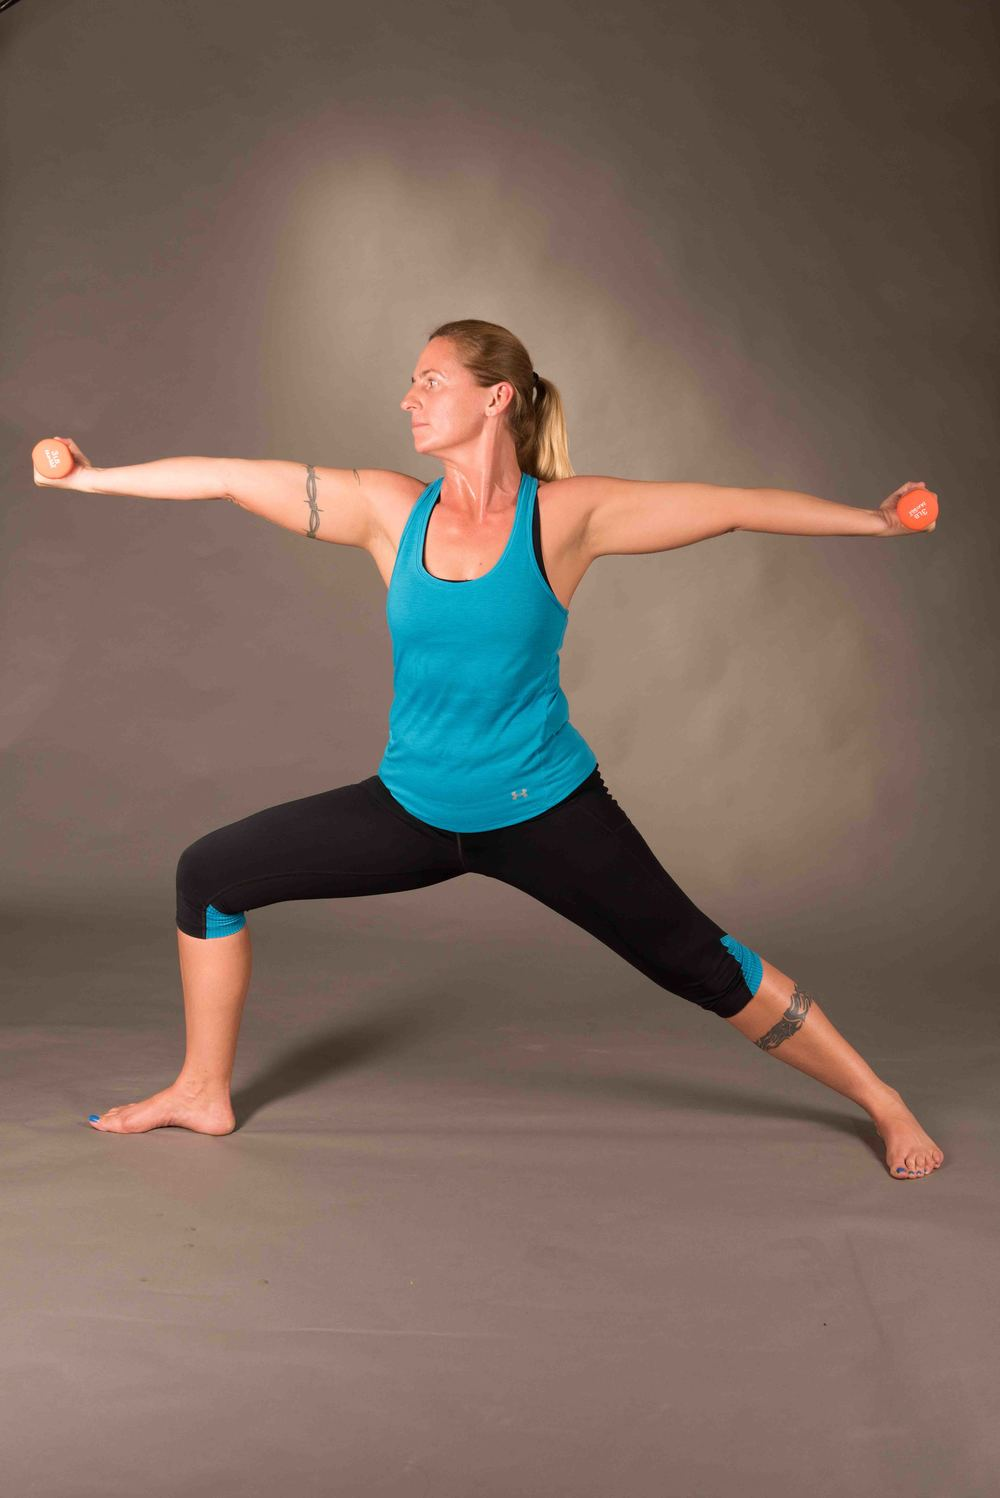 Santa Anita Hot Yoga Kayla Group Pose 7445-7445.jpg